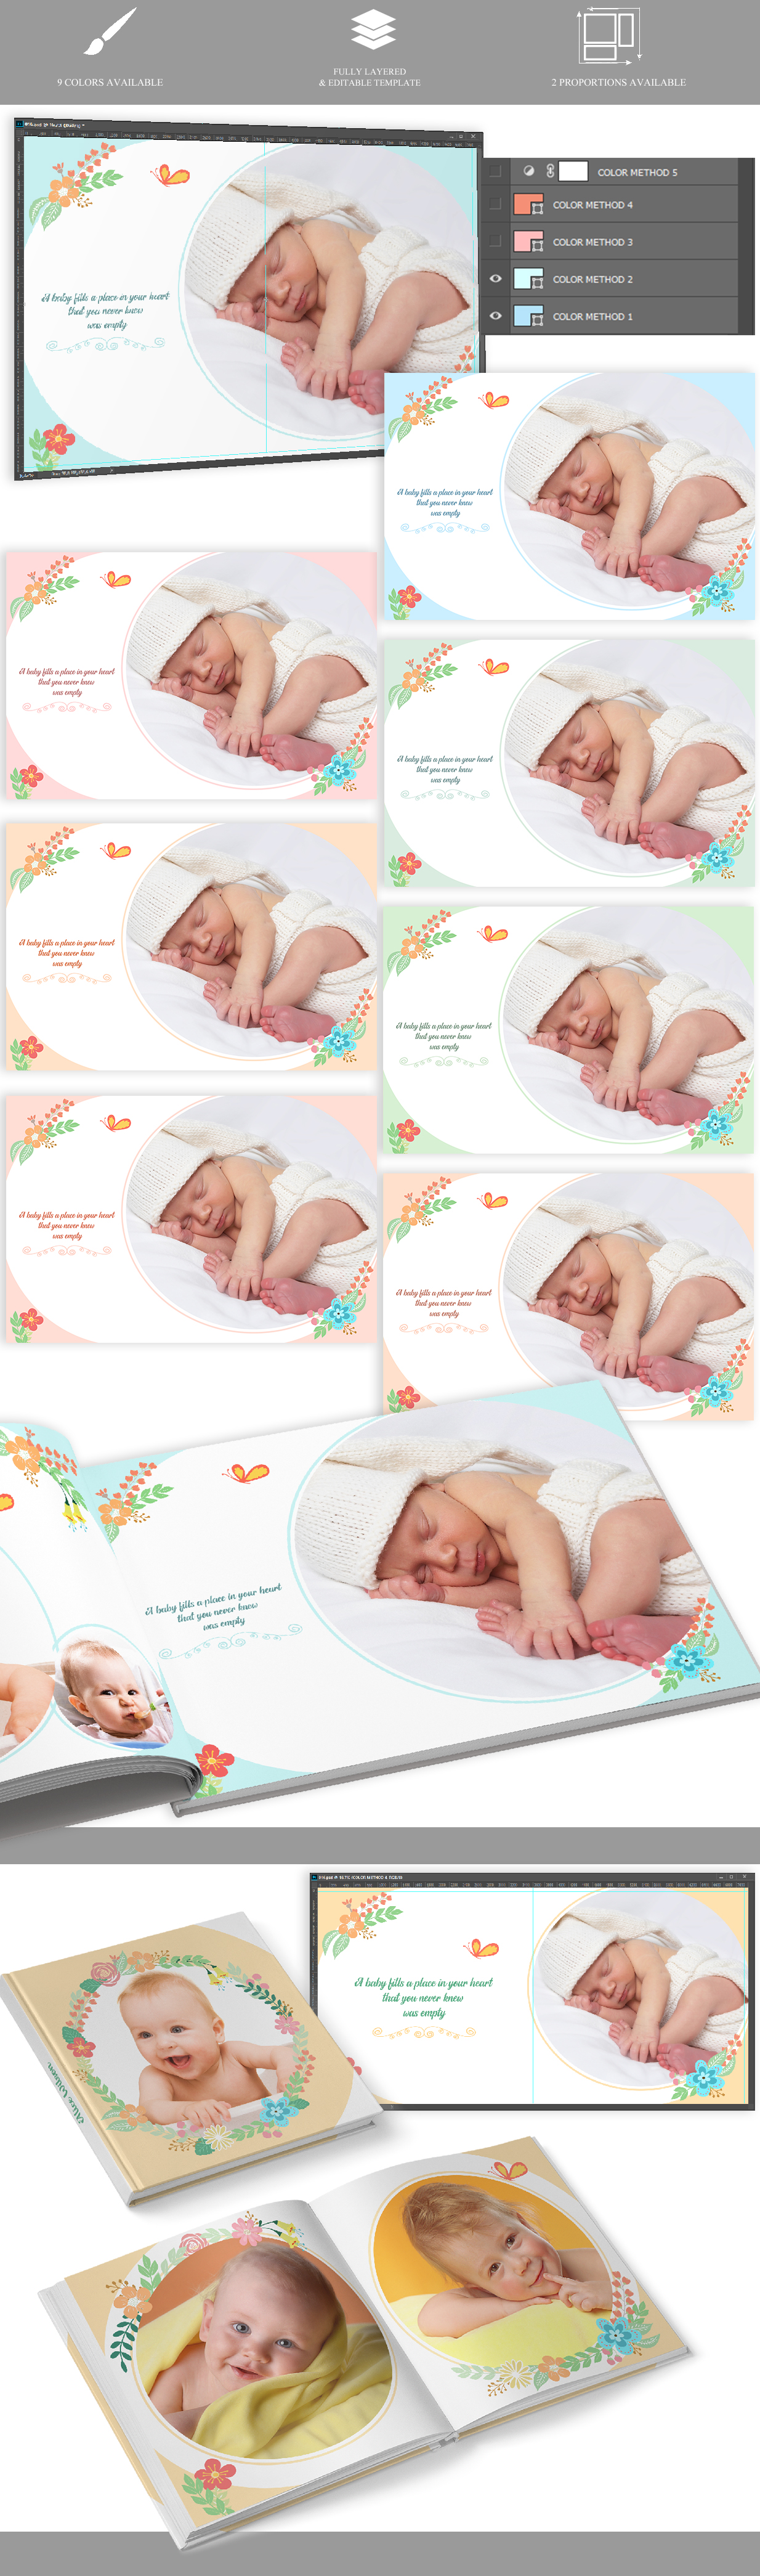 Baby Photo album v.18 psd Photoshop